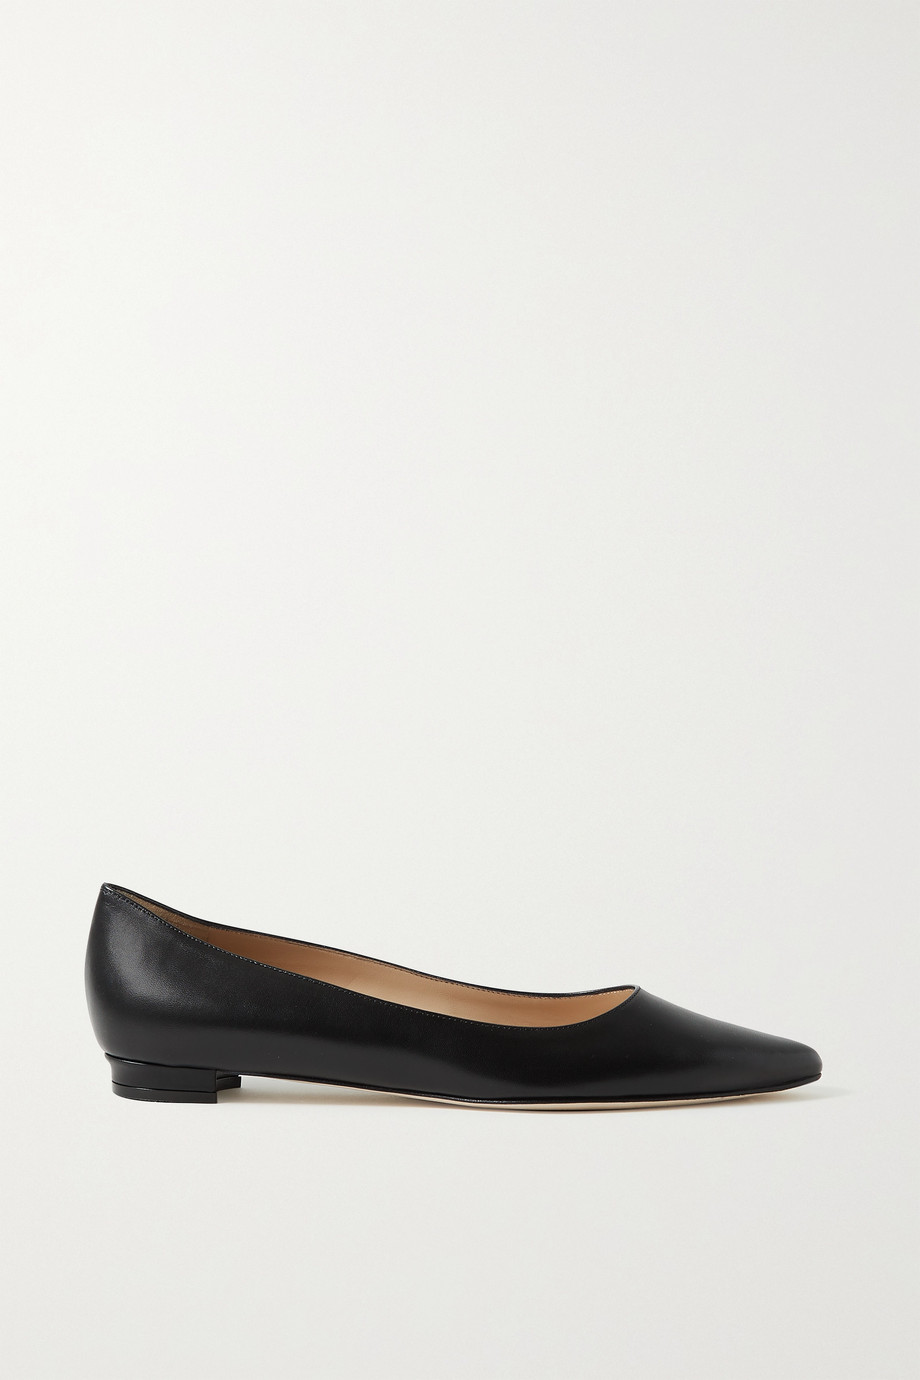 MANOLO BLAHNIK Titto leather point-toe flats